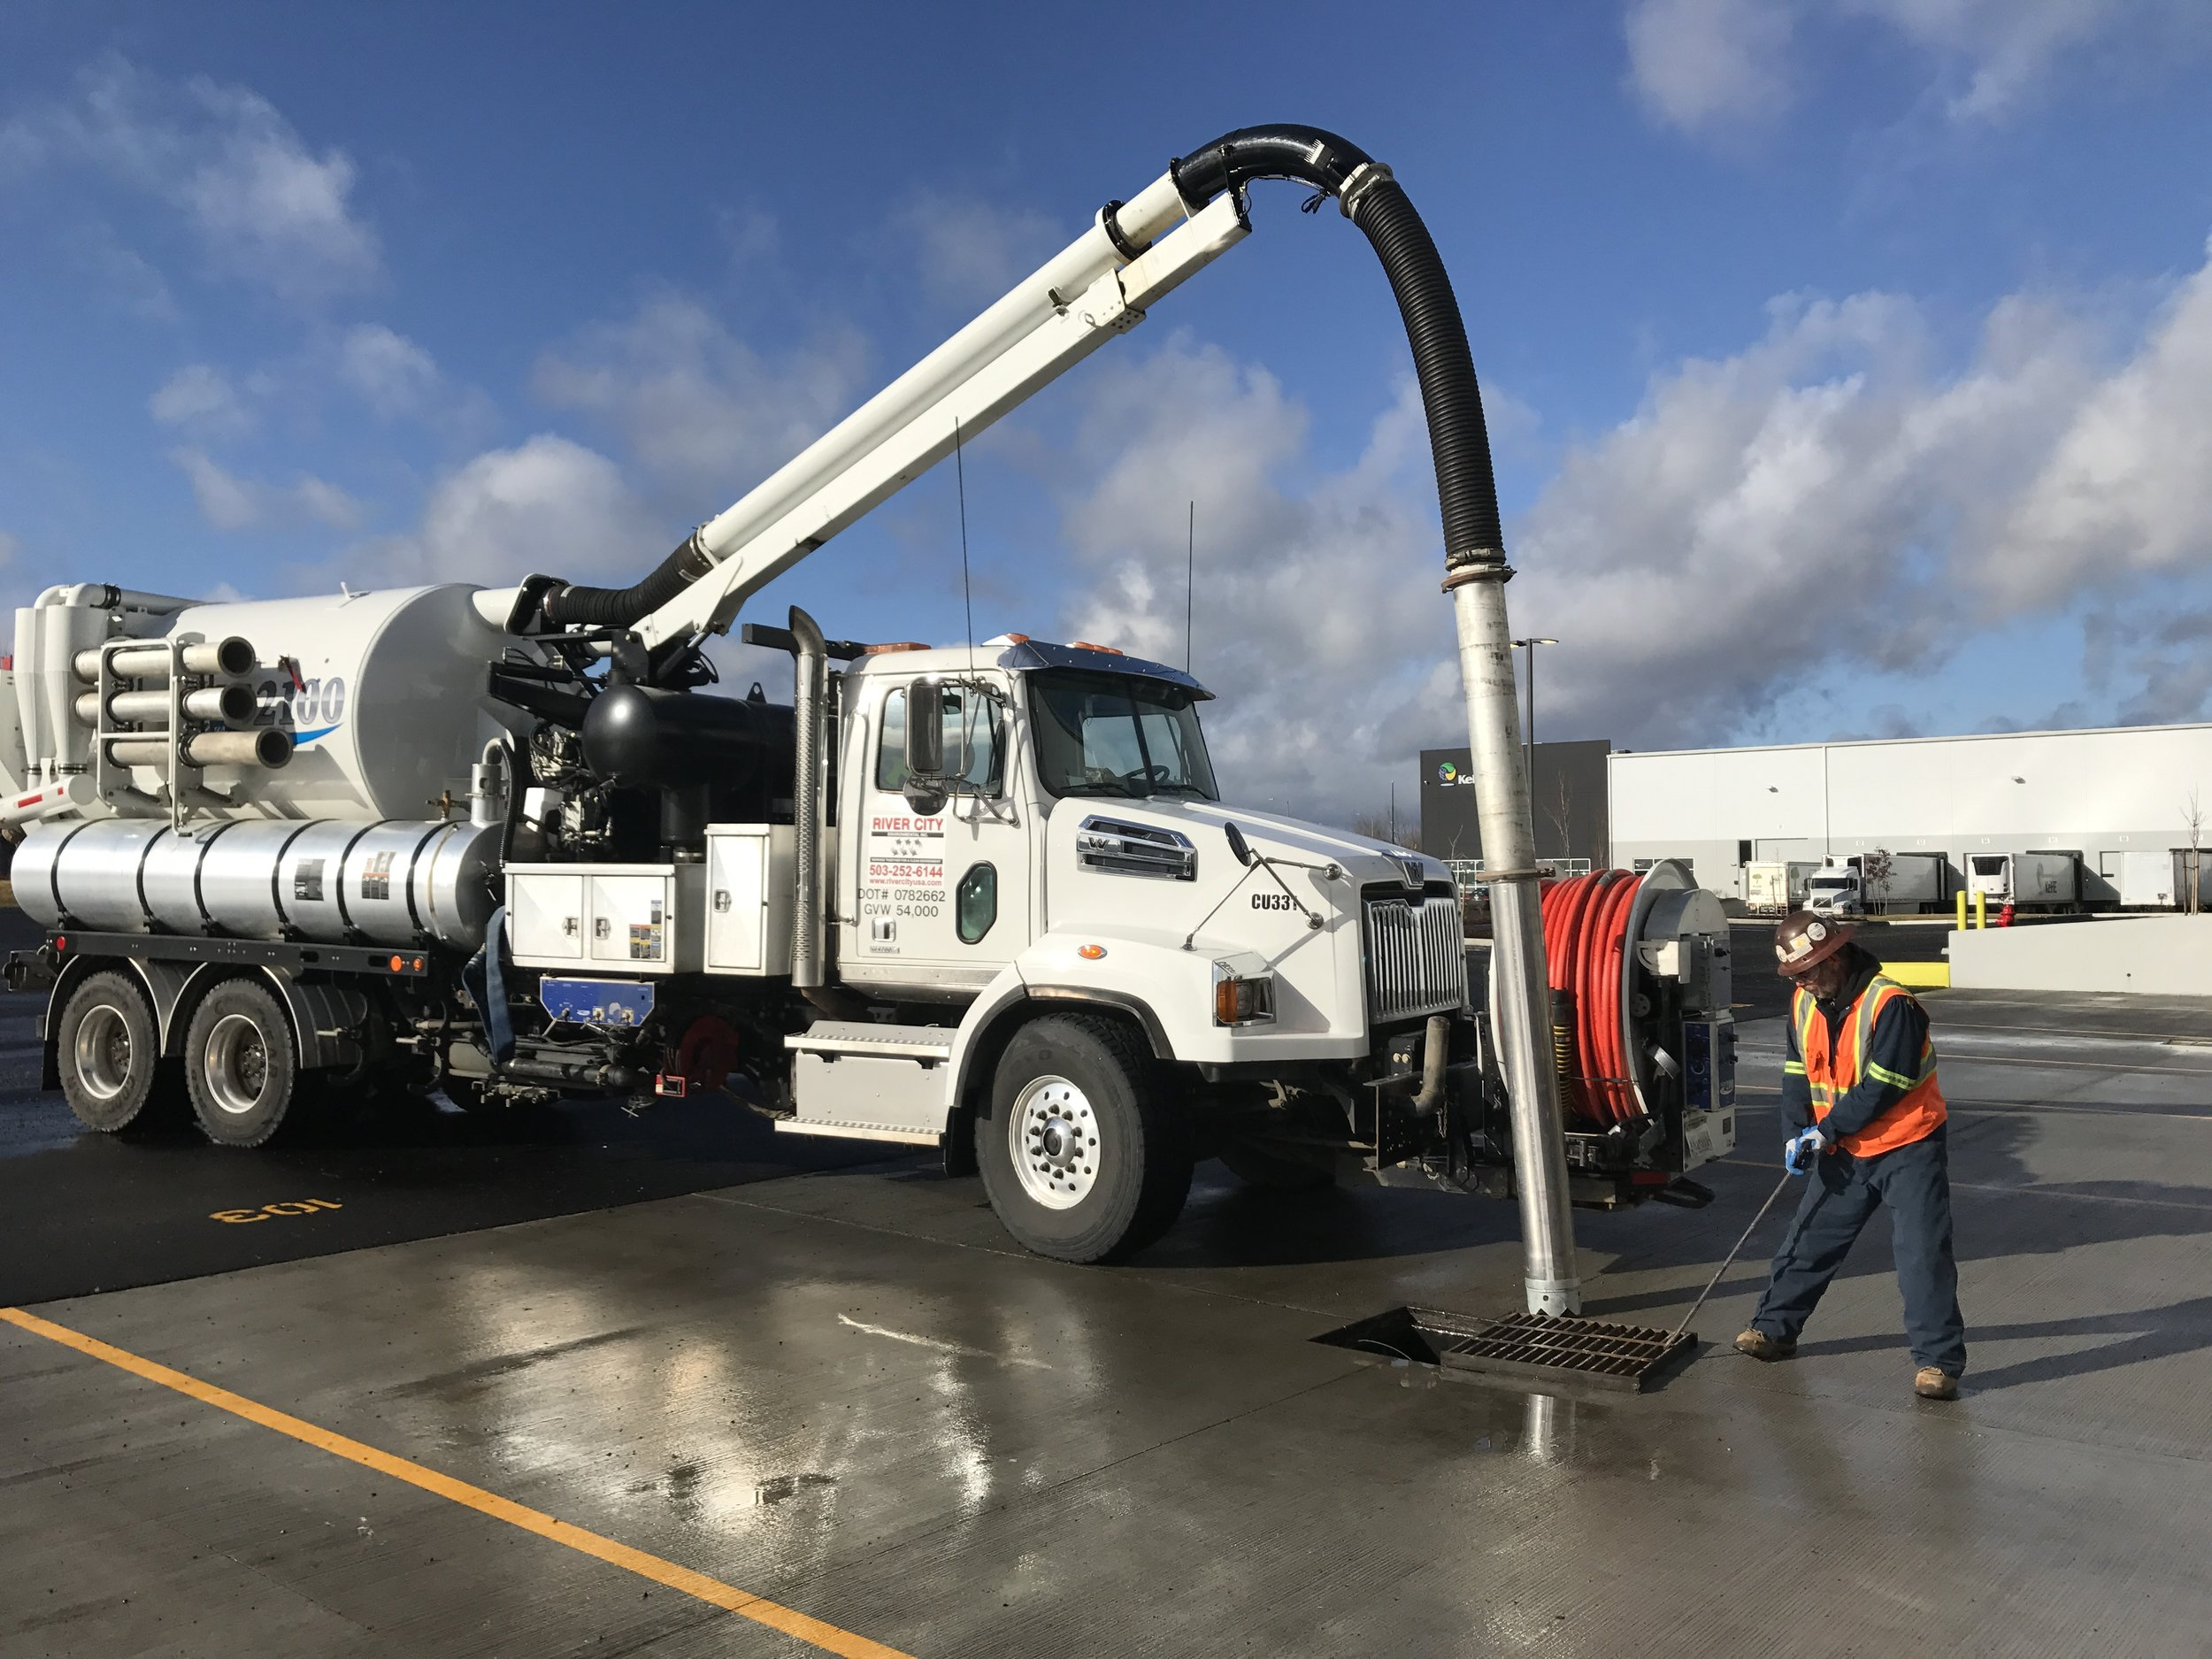 Industrial parking lot and vactor truck services